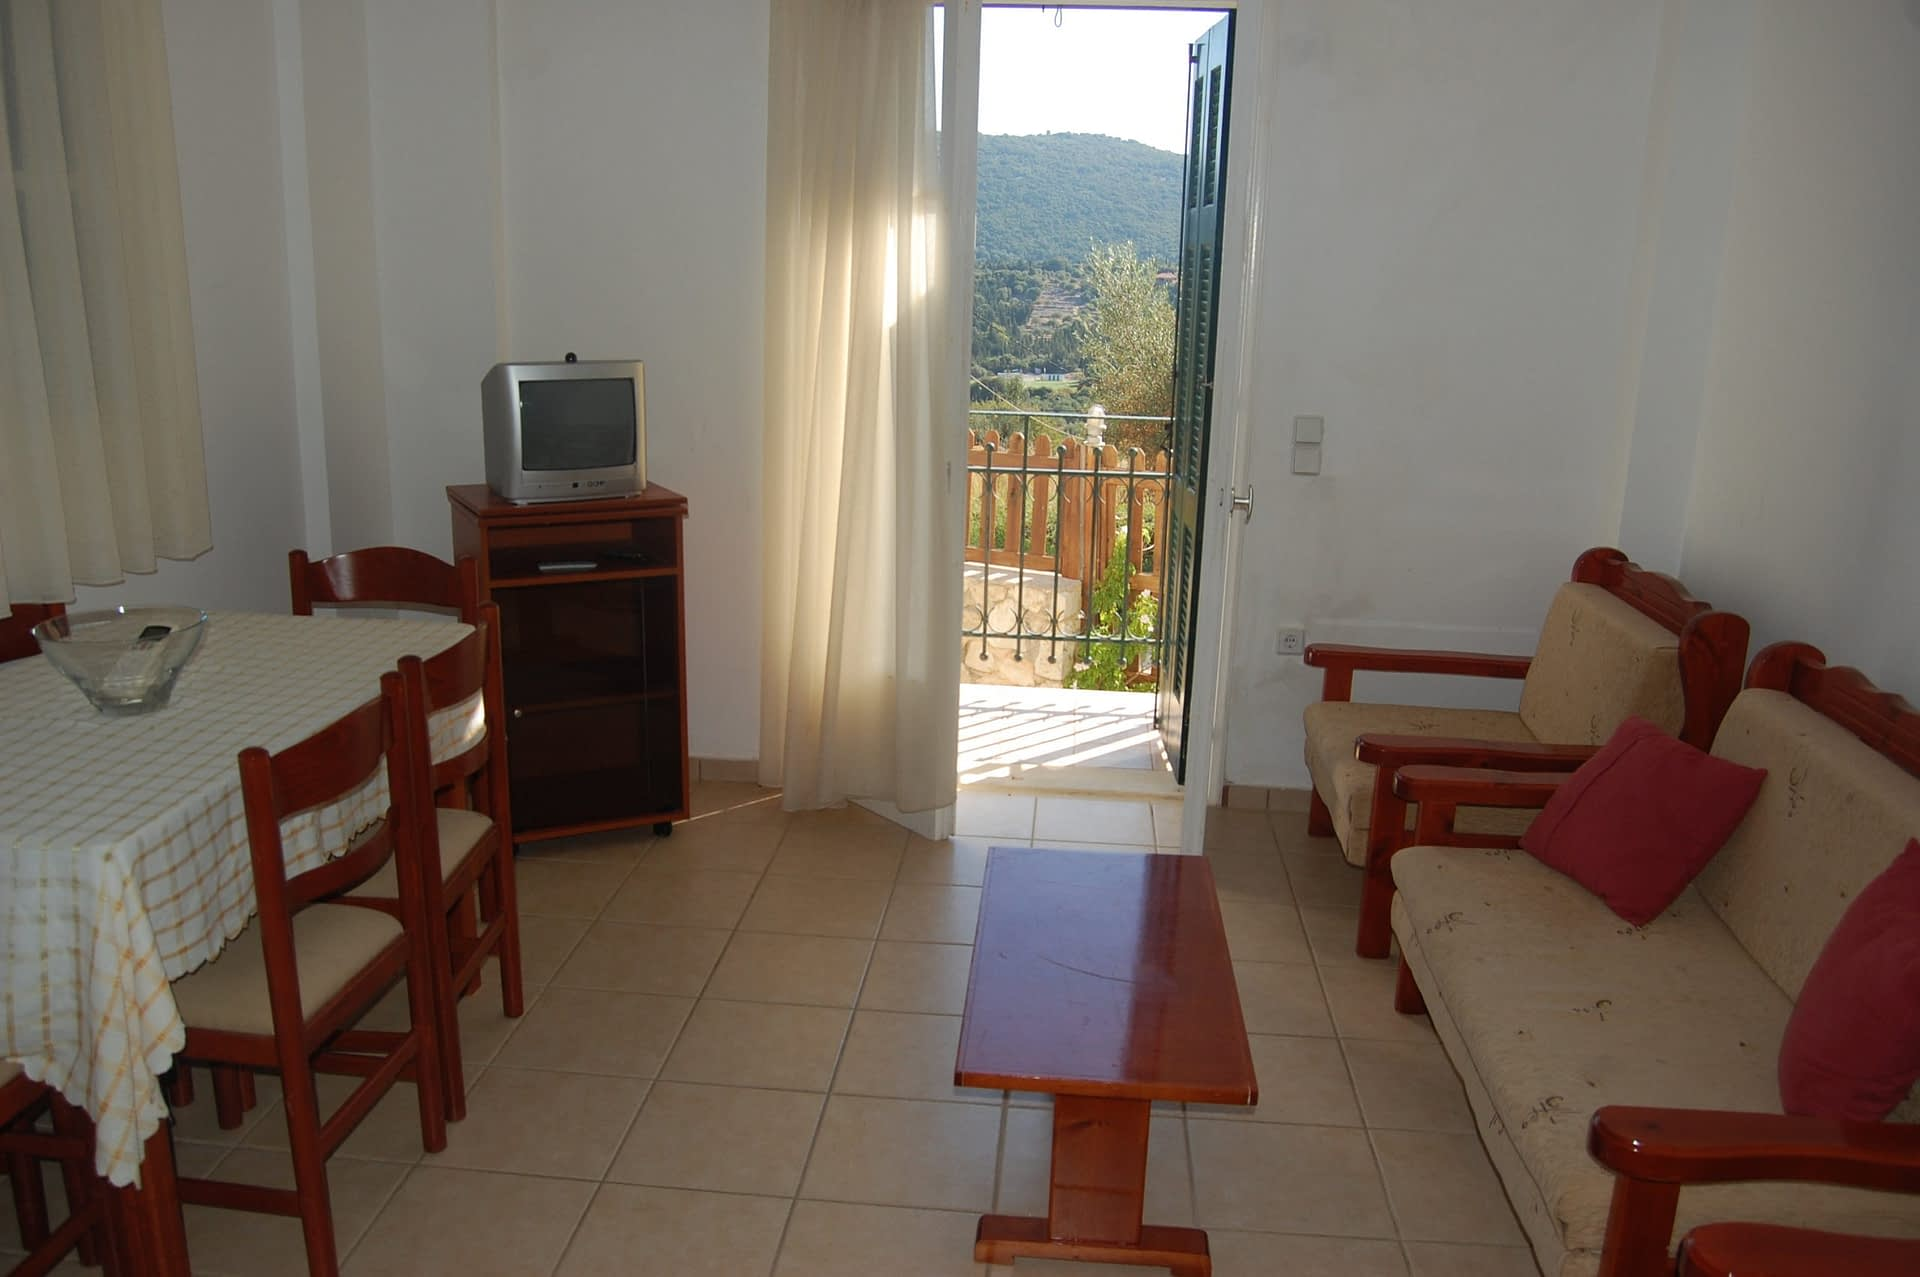 Interior apartment of Iriana Village for rent in Ithaca Greece, Stavros